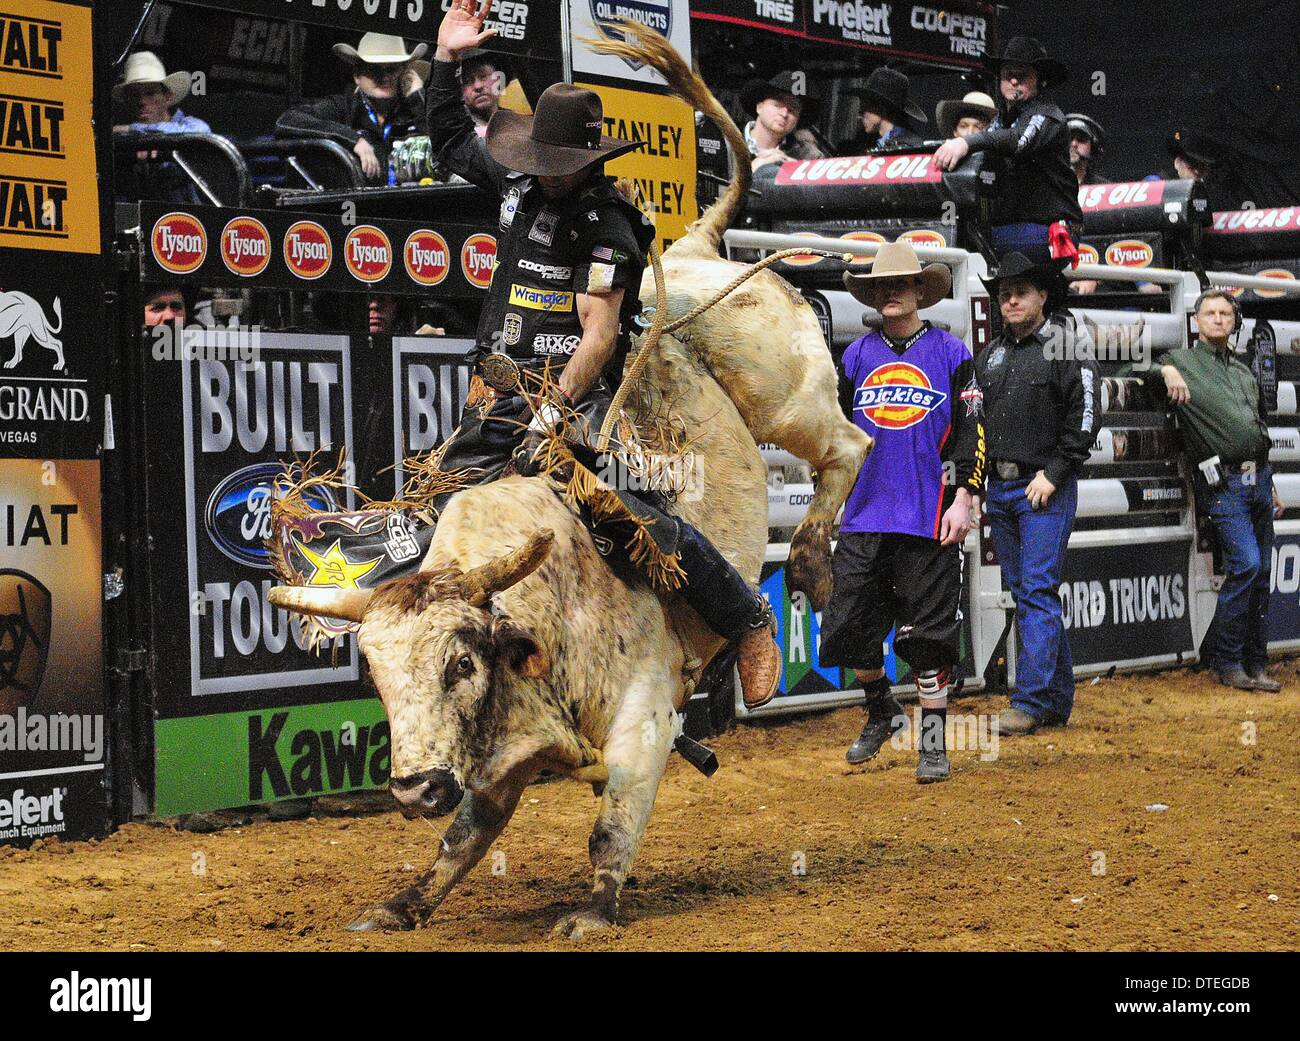 St. Louis, Missouri, USA. 16th Feb, 2014. February 16, 2014: Rider Fabiano Vieira on bull Soldier Boy during the Stock Photo